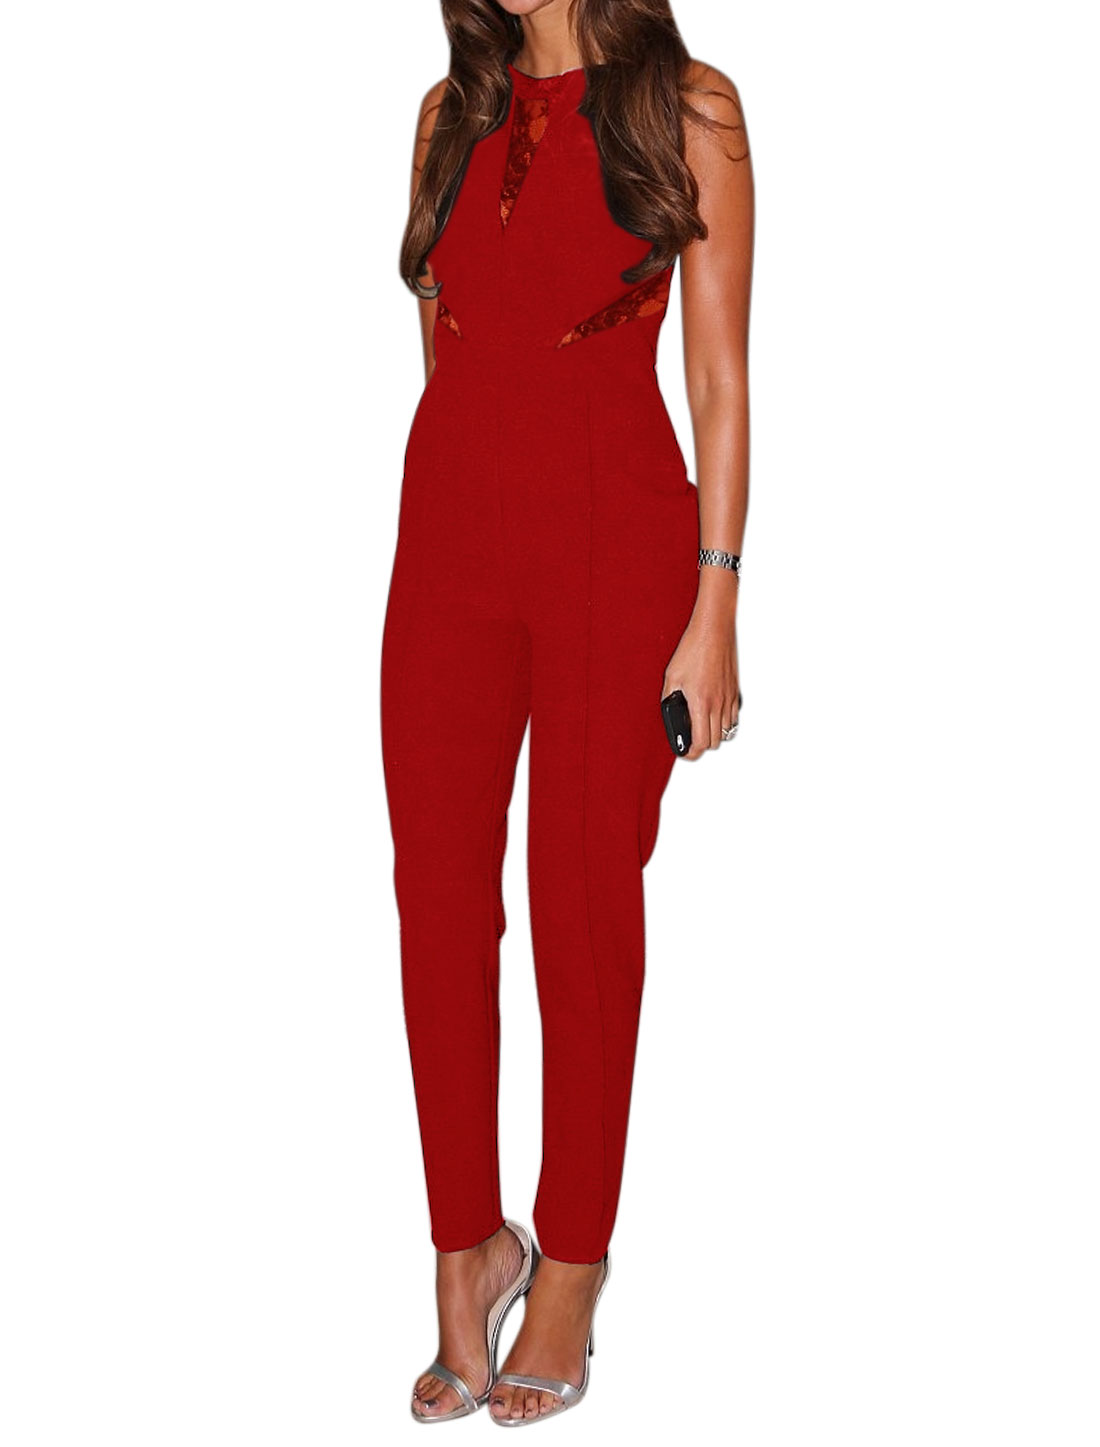 Women Crew Neck Sleeveless Semi Sheer Lace Panel Jumpsuit Red S